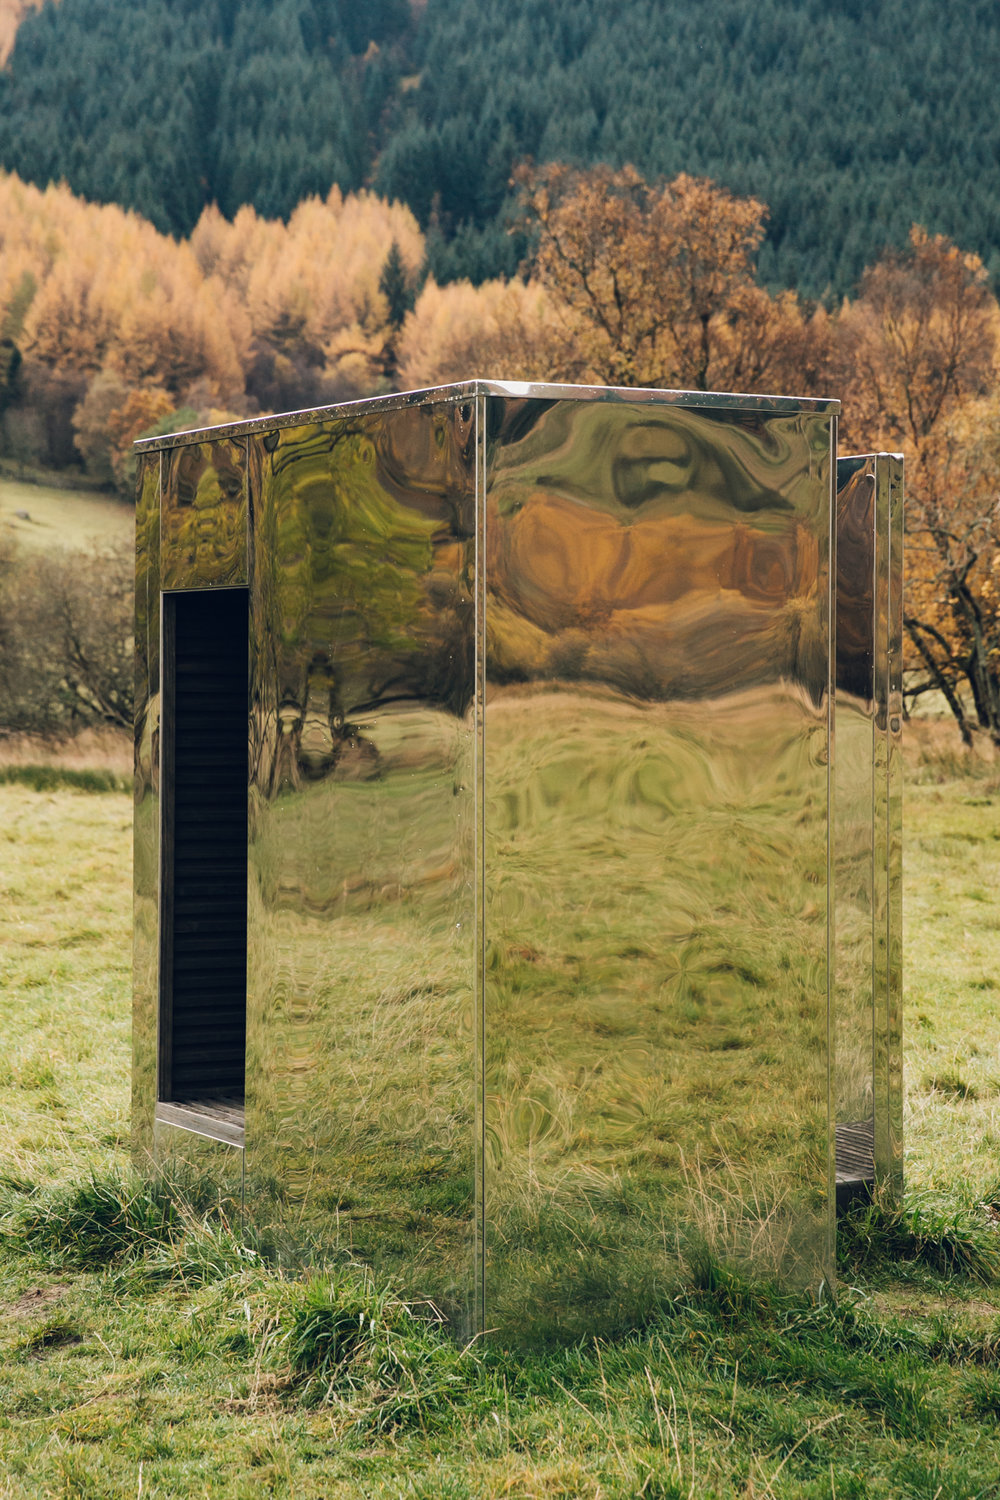 Mirrored cabin in Scotland in Autumn.